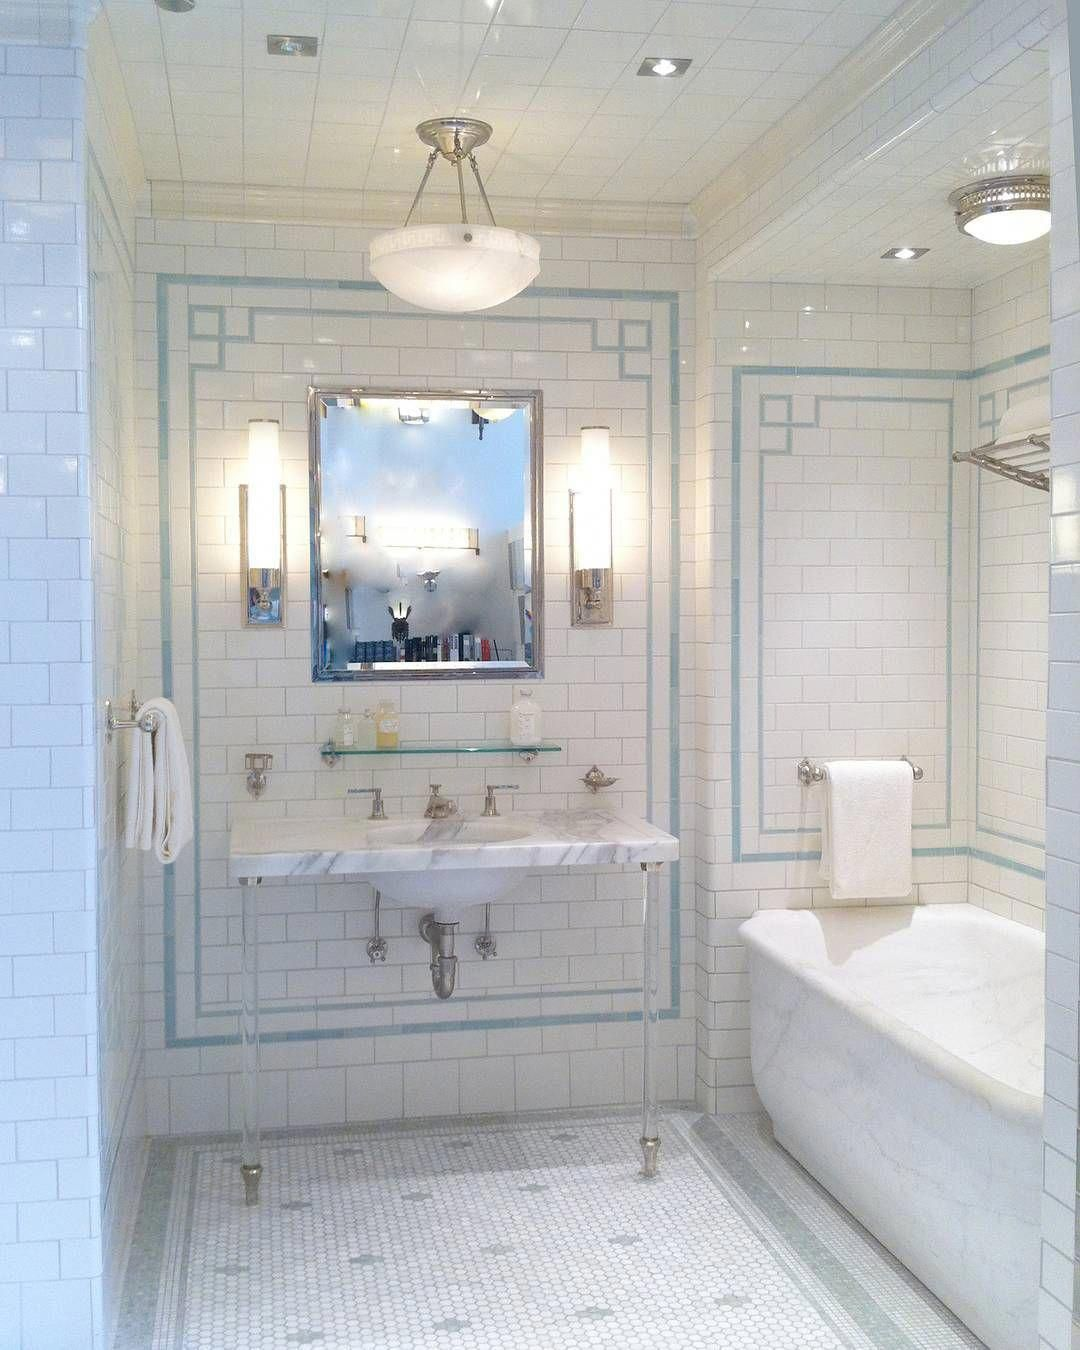 50 Images How Much Does Bathroom Remodel Cost Diy Bathroom Remodel Bathroom Remodel Cost Restroom Renovation